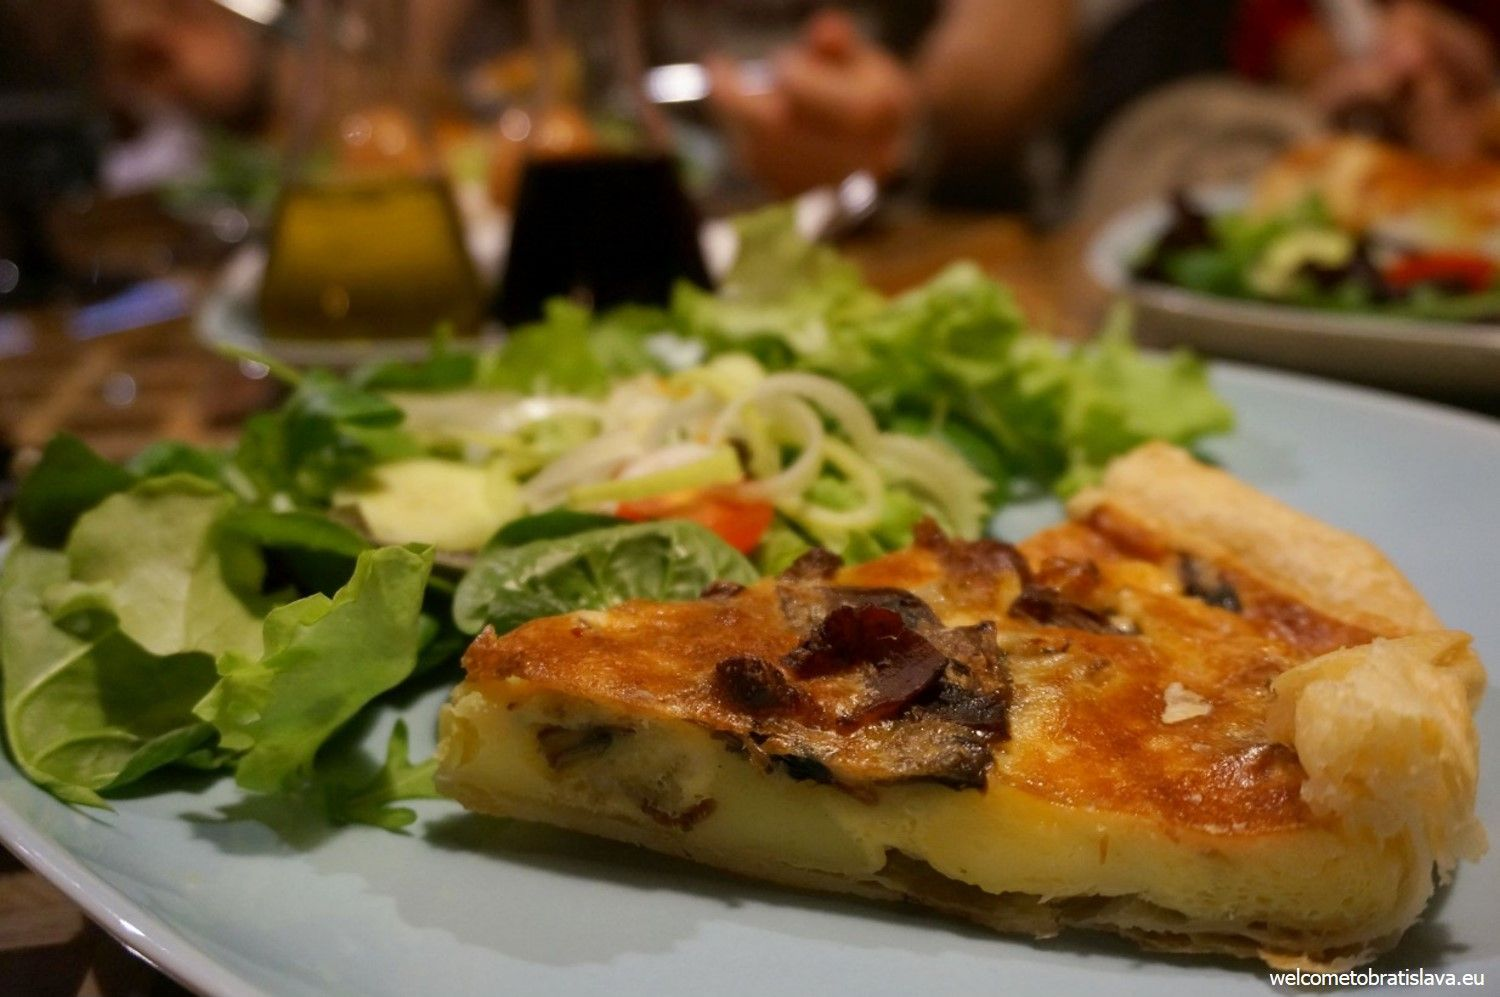 A Carbonara quiche with bacon, thyme and Parmesan